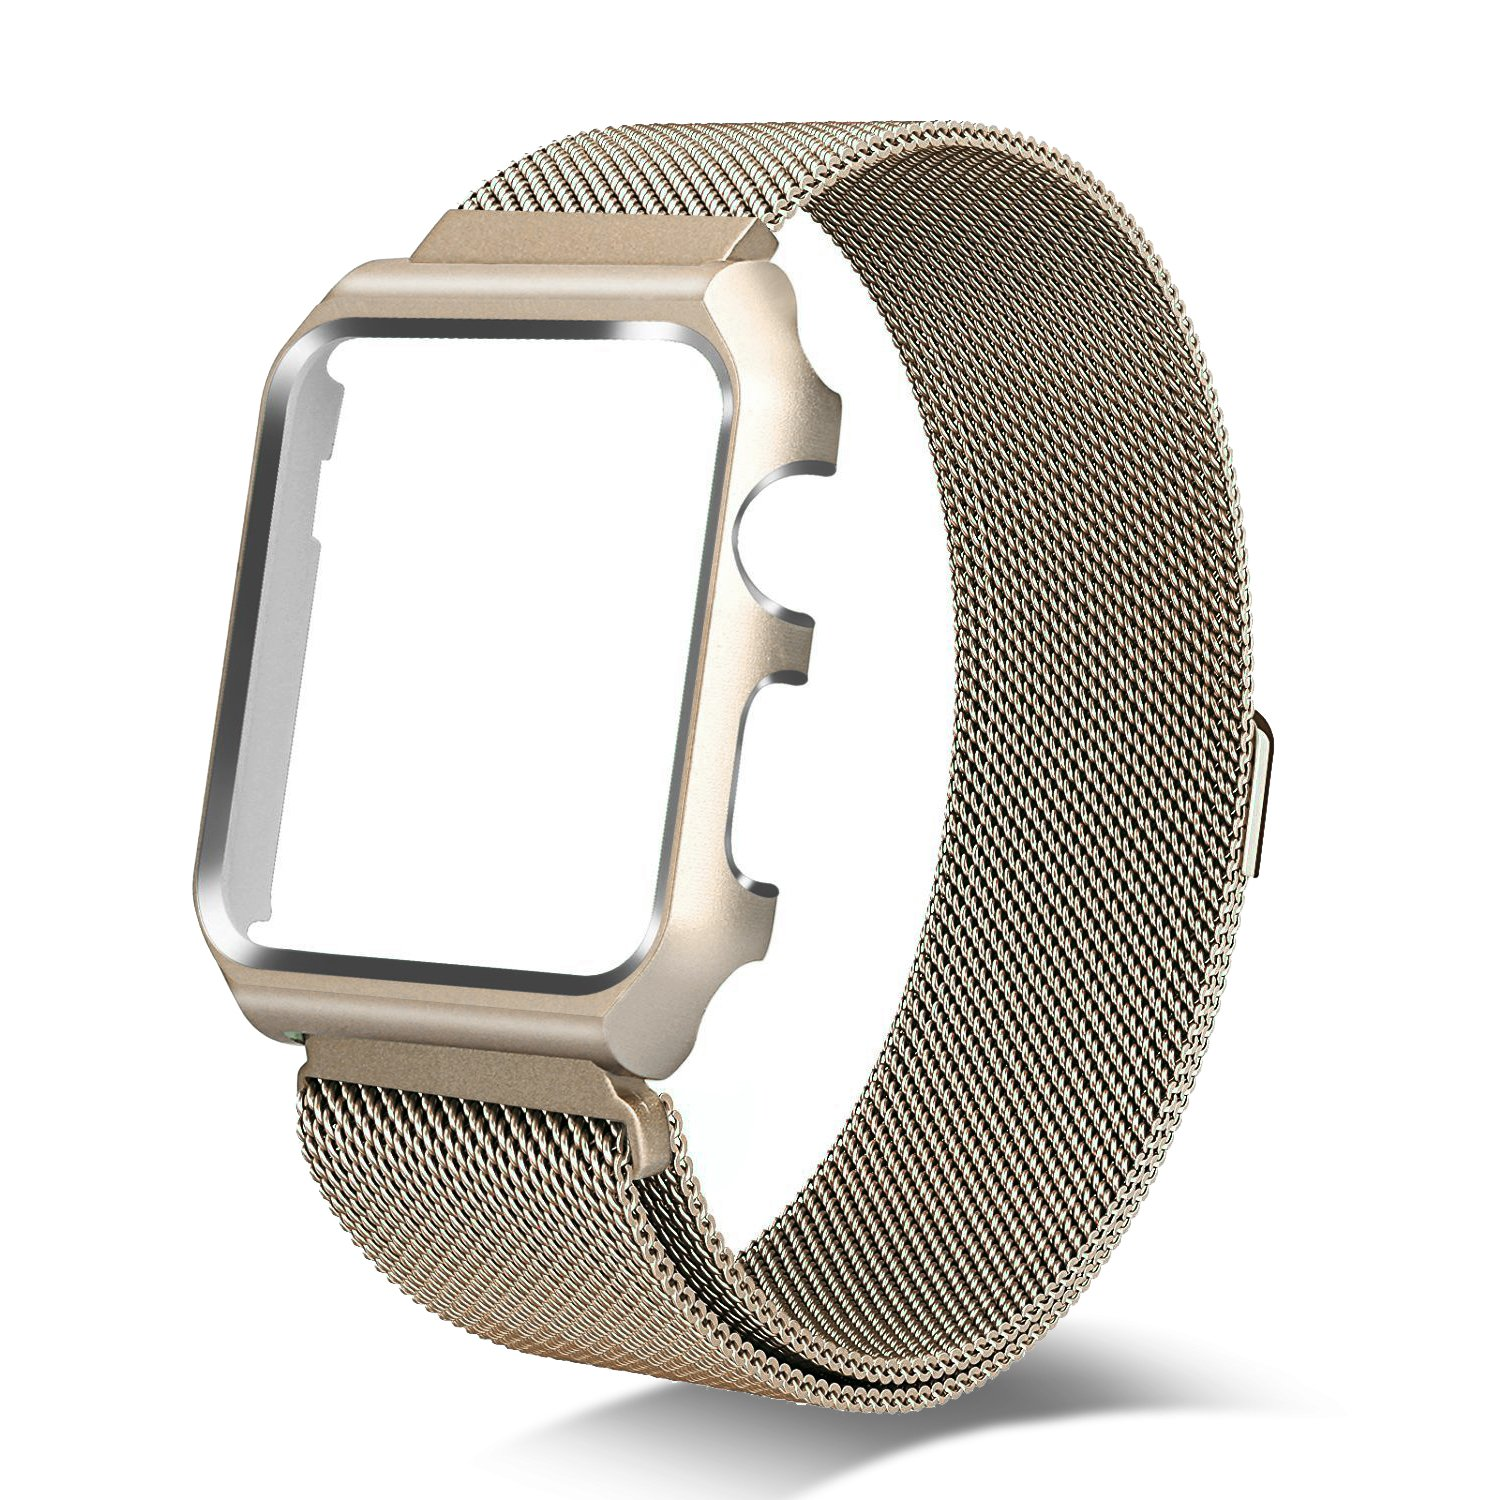 Apple Watch Bands Gold: Amazon.com